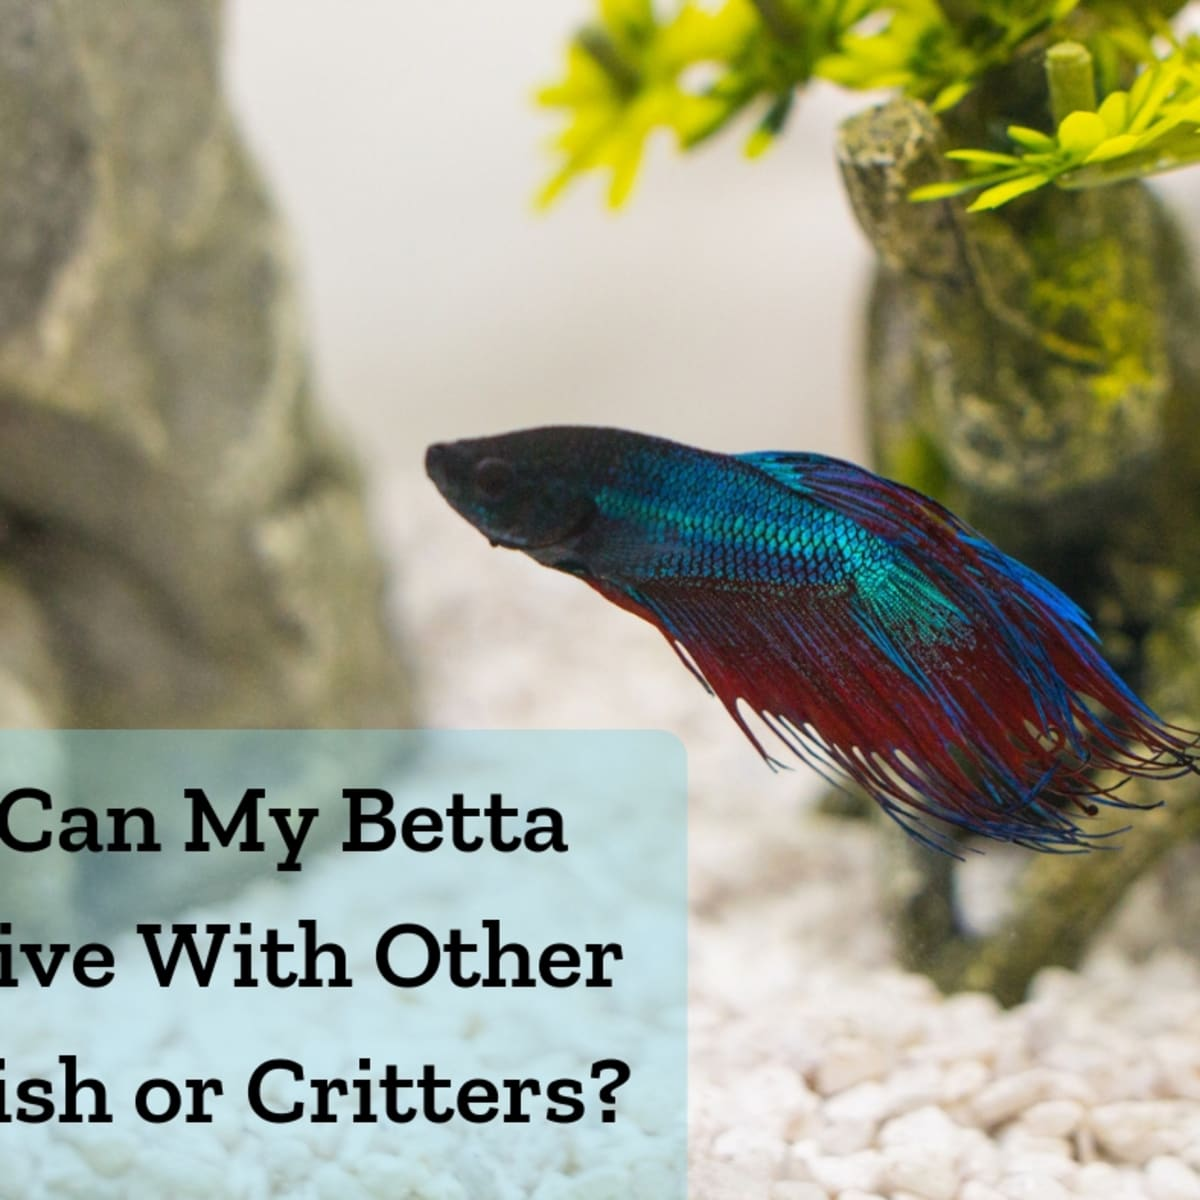 10 Best Tank Mates For Bettas And Betta Fish In A Community Tank Pethelpful By Fellow Animal Lovers And Experts